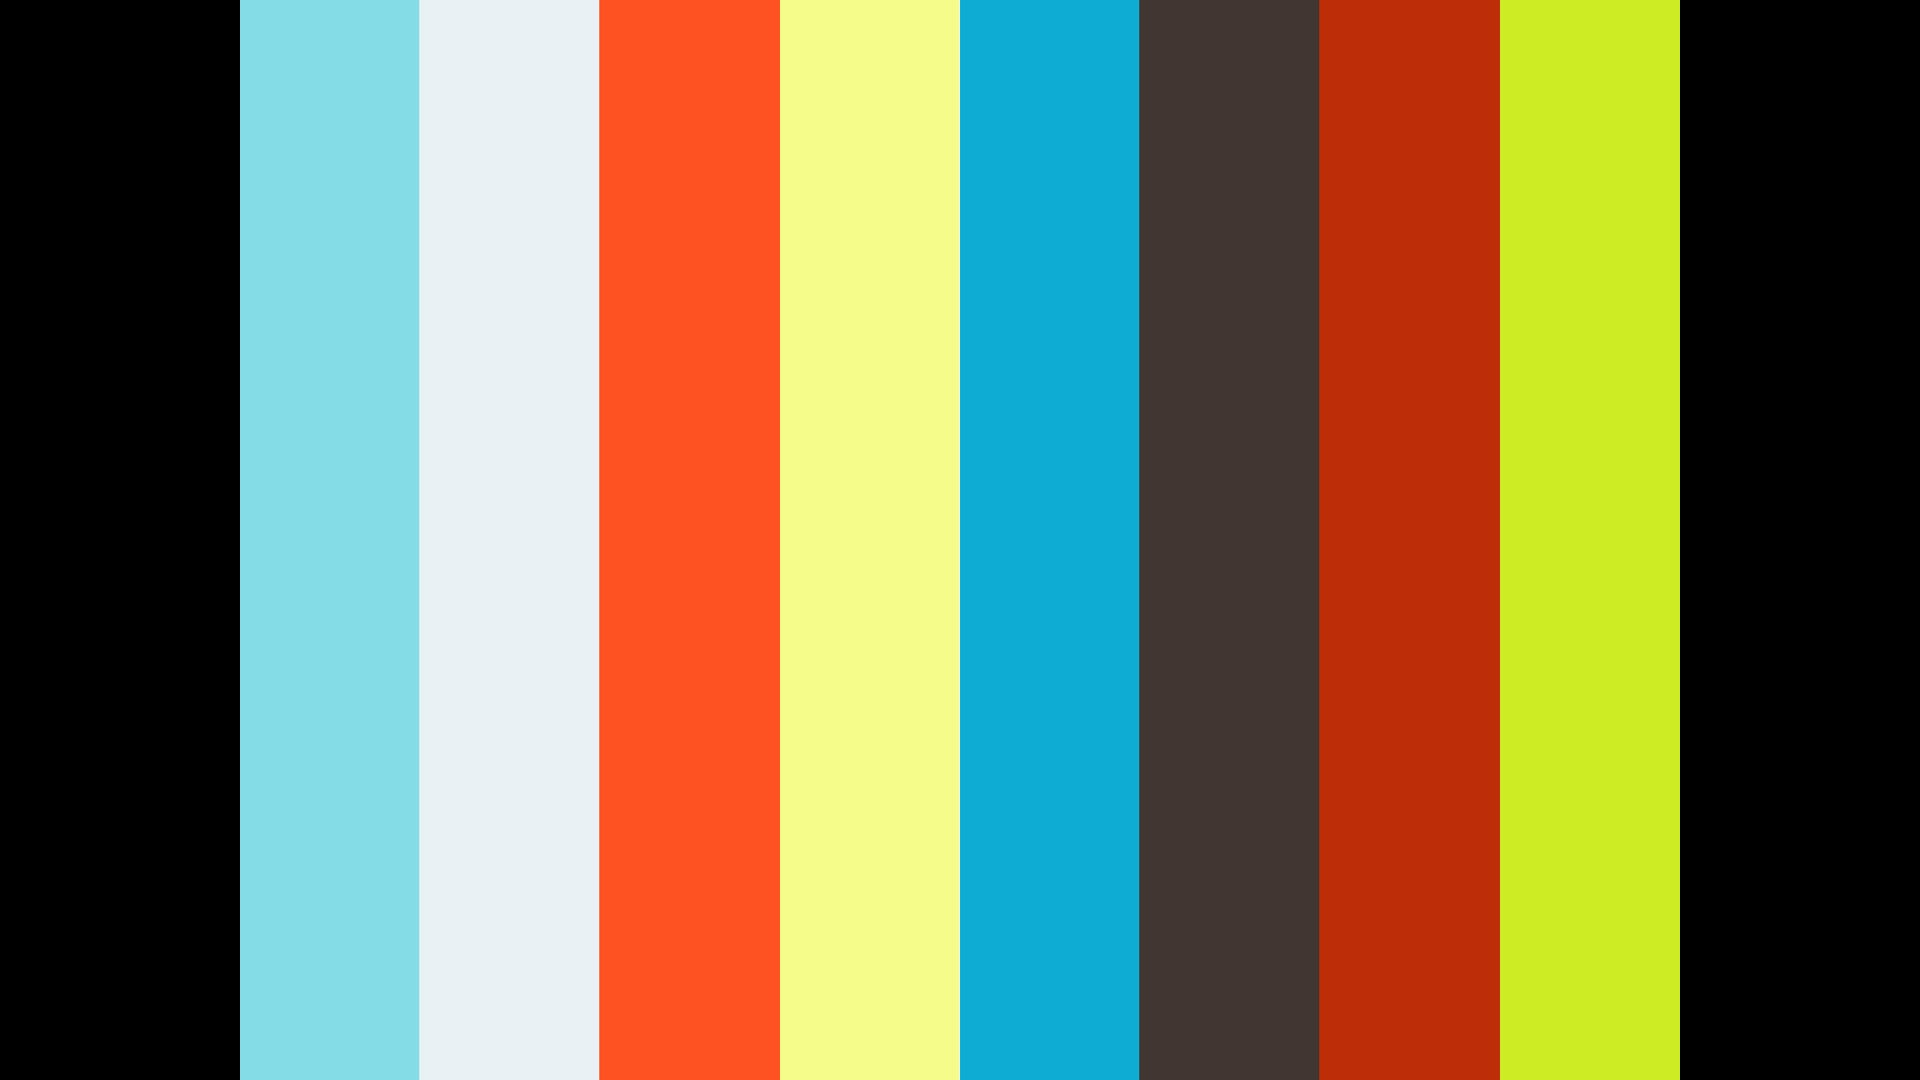 Market News #90. Apple's Q4 results. Amgen takes 20% stake in BeiGene. Google buys Fitbit for $2.1bn